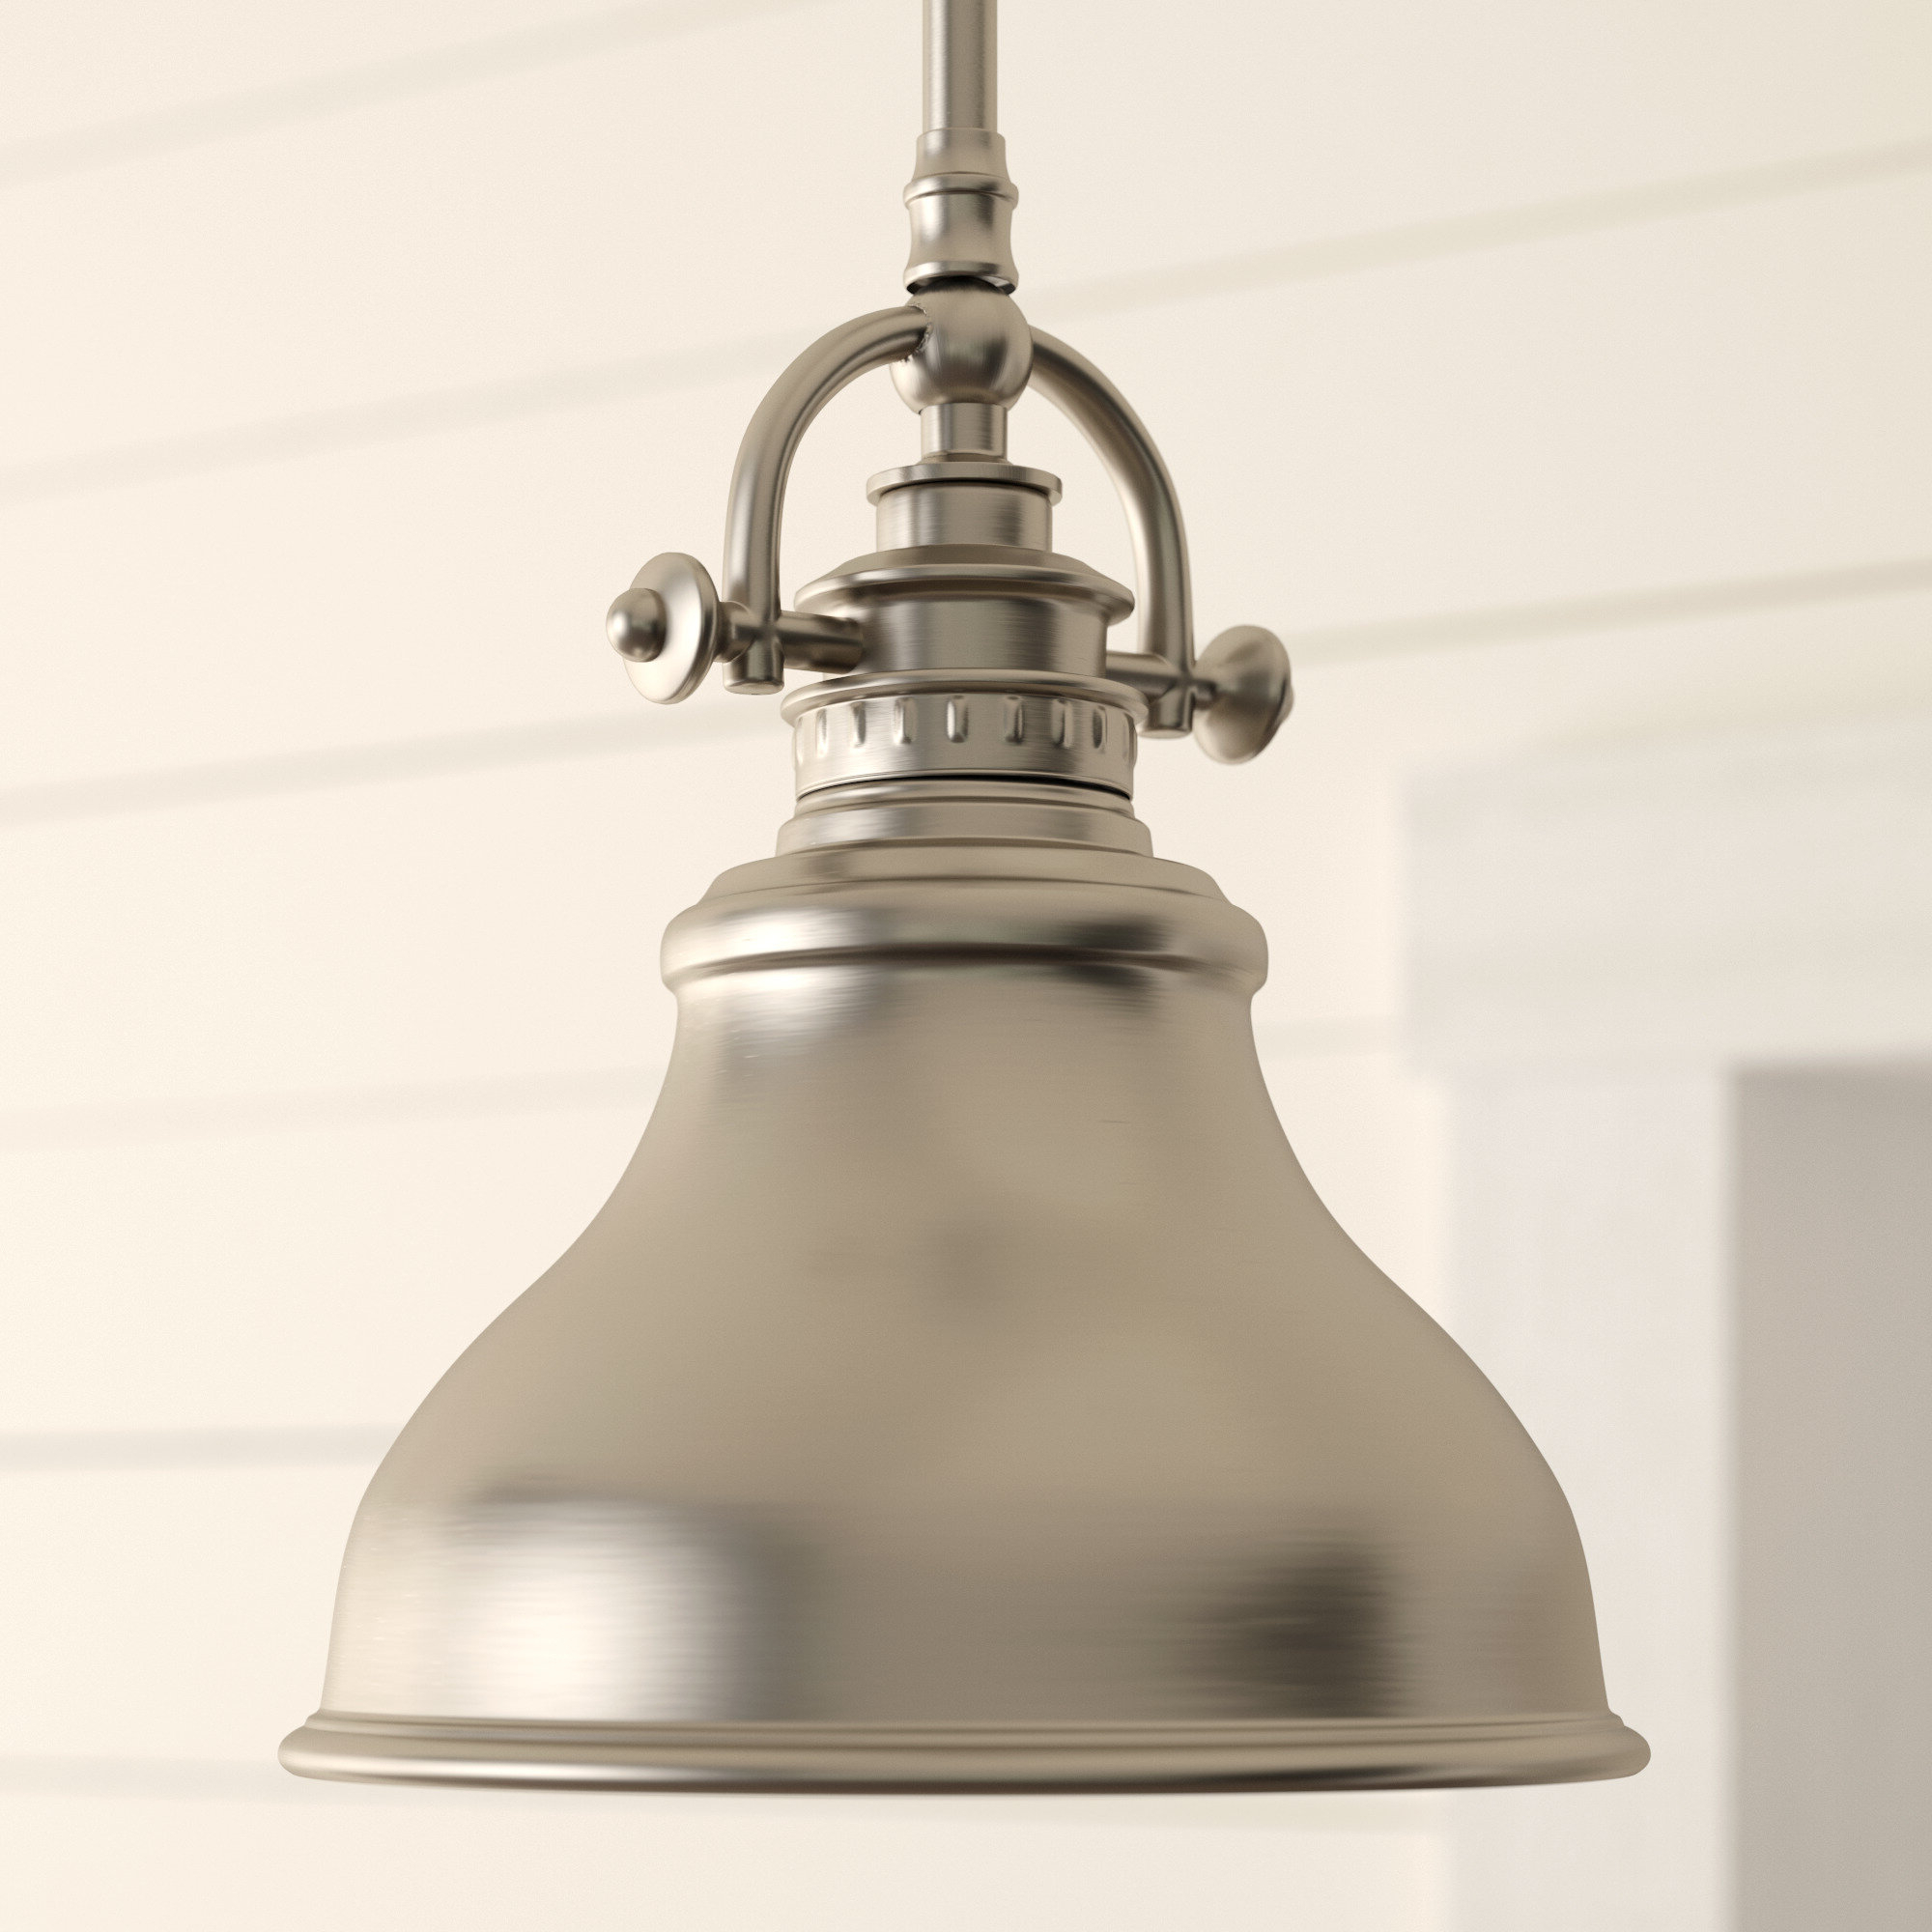 Most Current Beachcrest Home Mueller 1 Light Single Dome Pendant Intended For Hamilton 1 Light Single Dome Pendants (View 14 of 25)